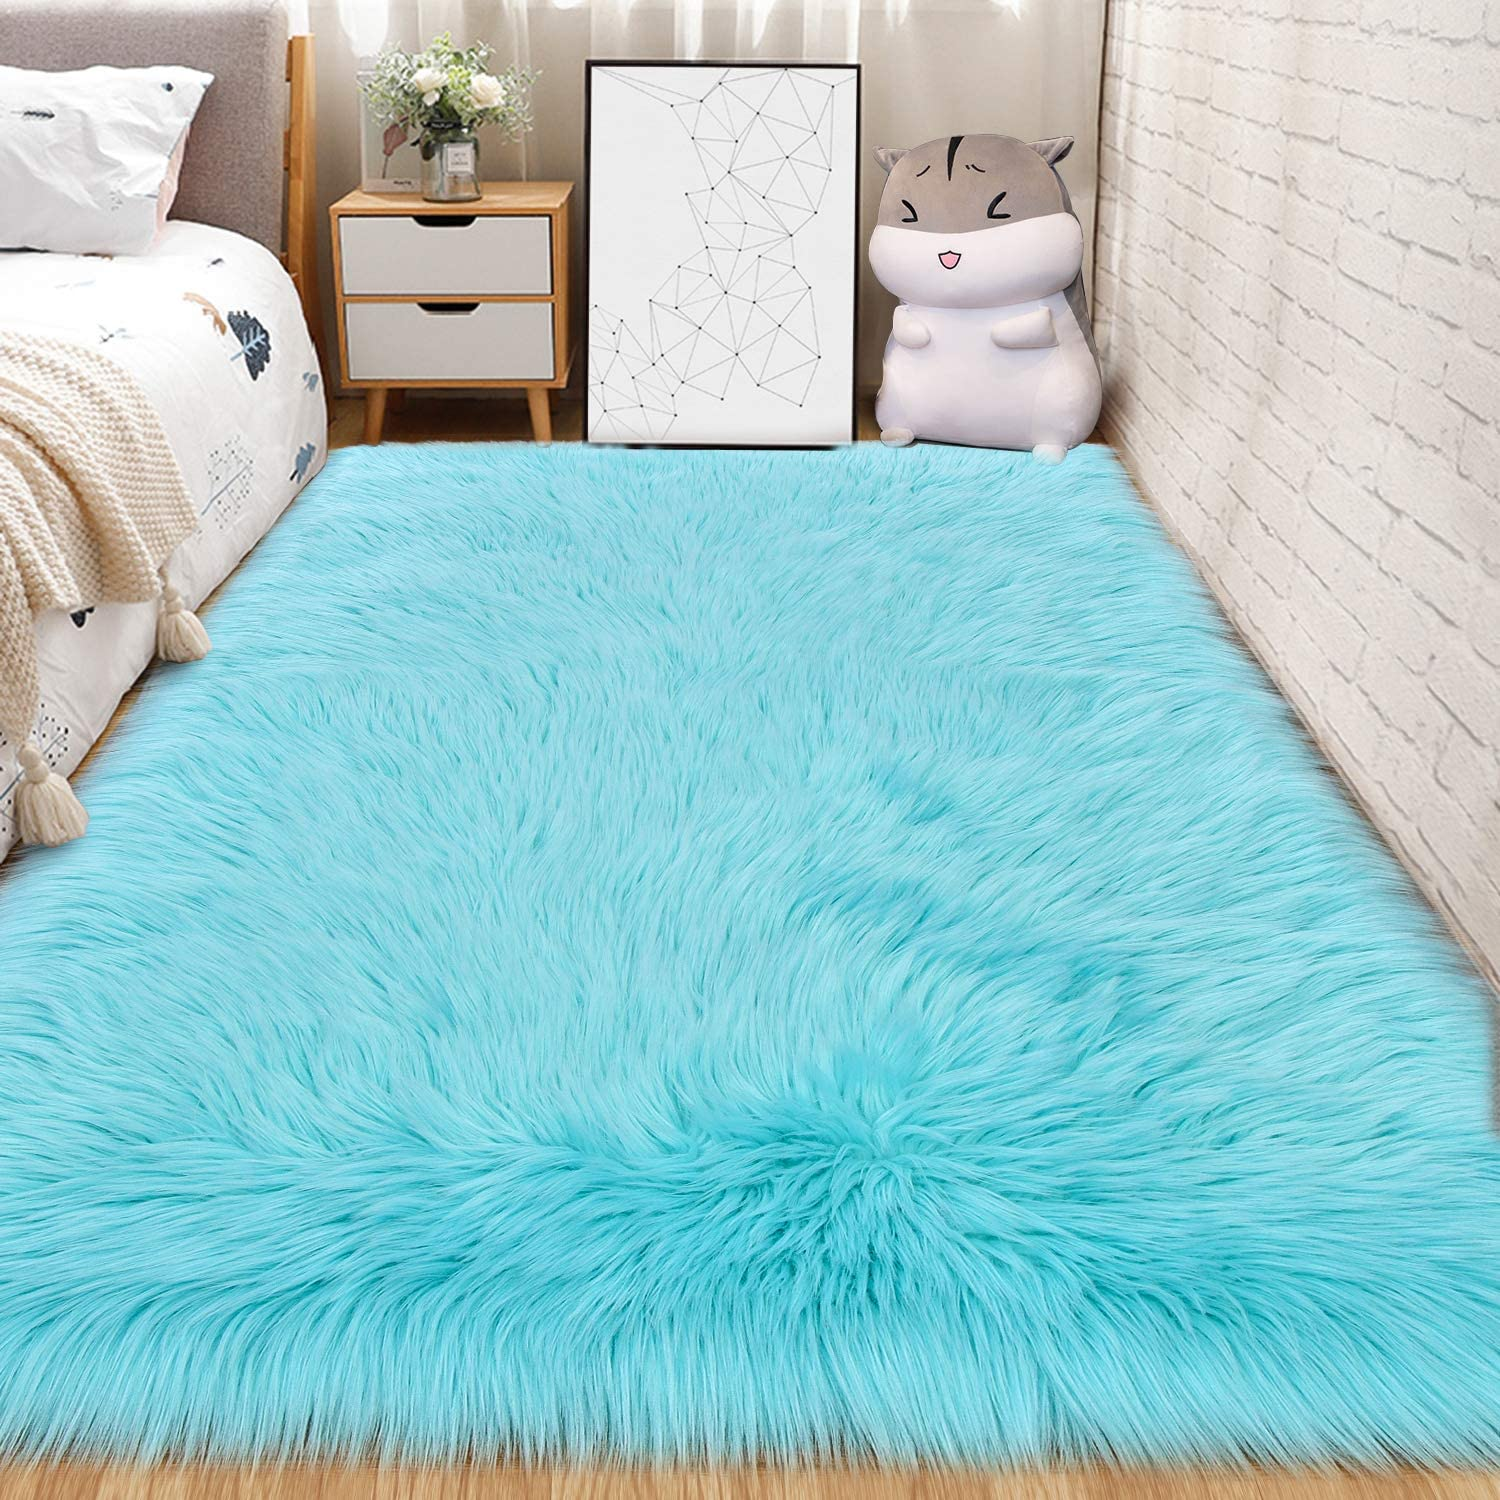 Andecor Soft Fluffy Animer and price revision Faux Year-end annual account Fur Bedroom Rugs Feet Indoor x 5.9 4 Wo